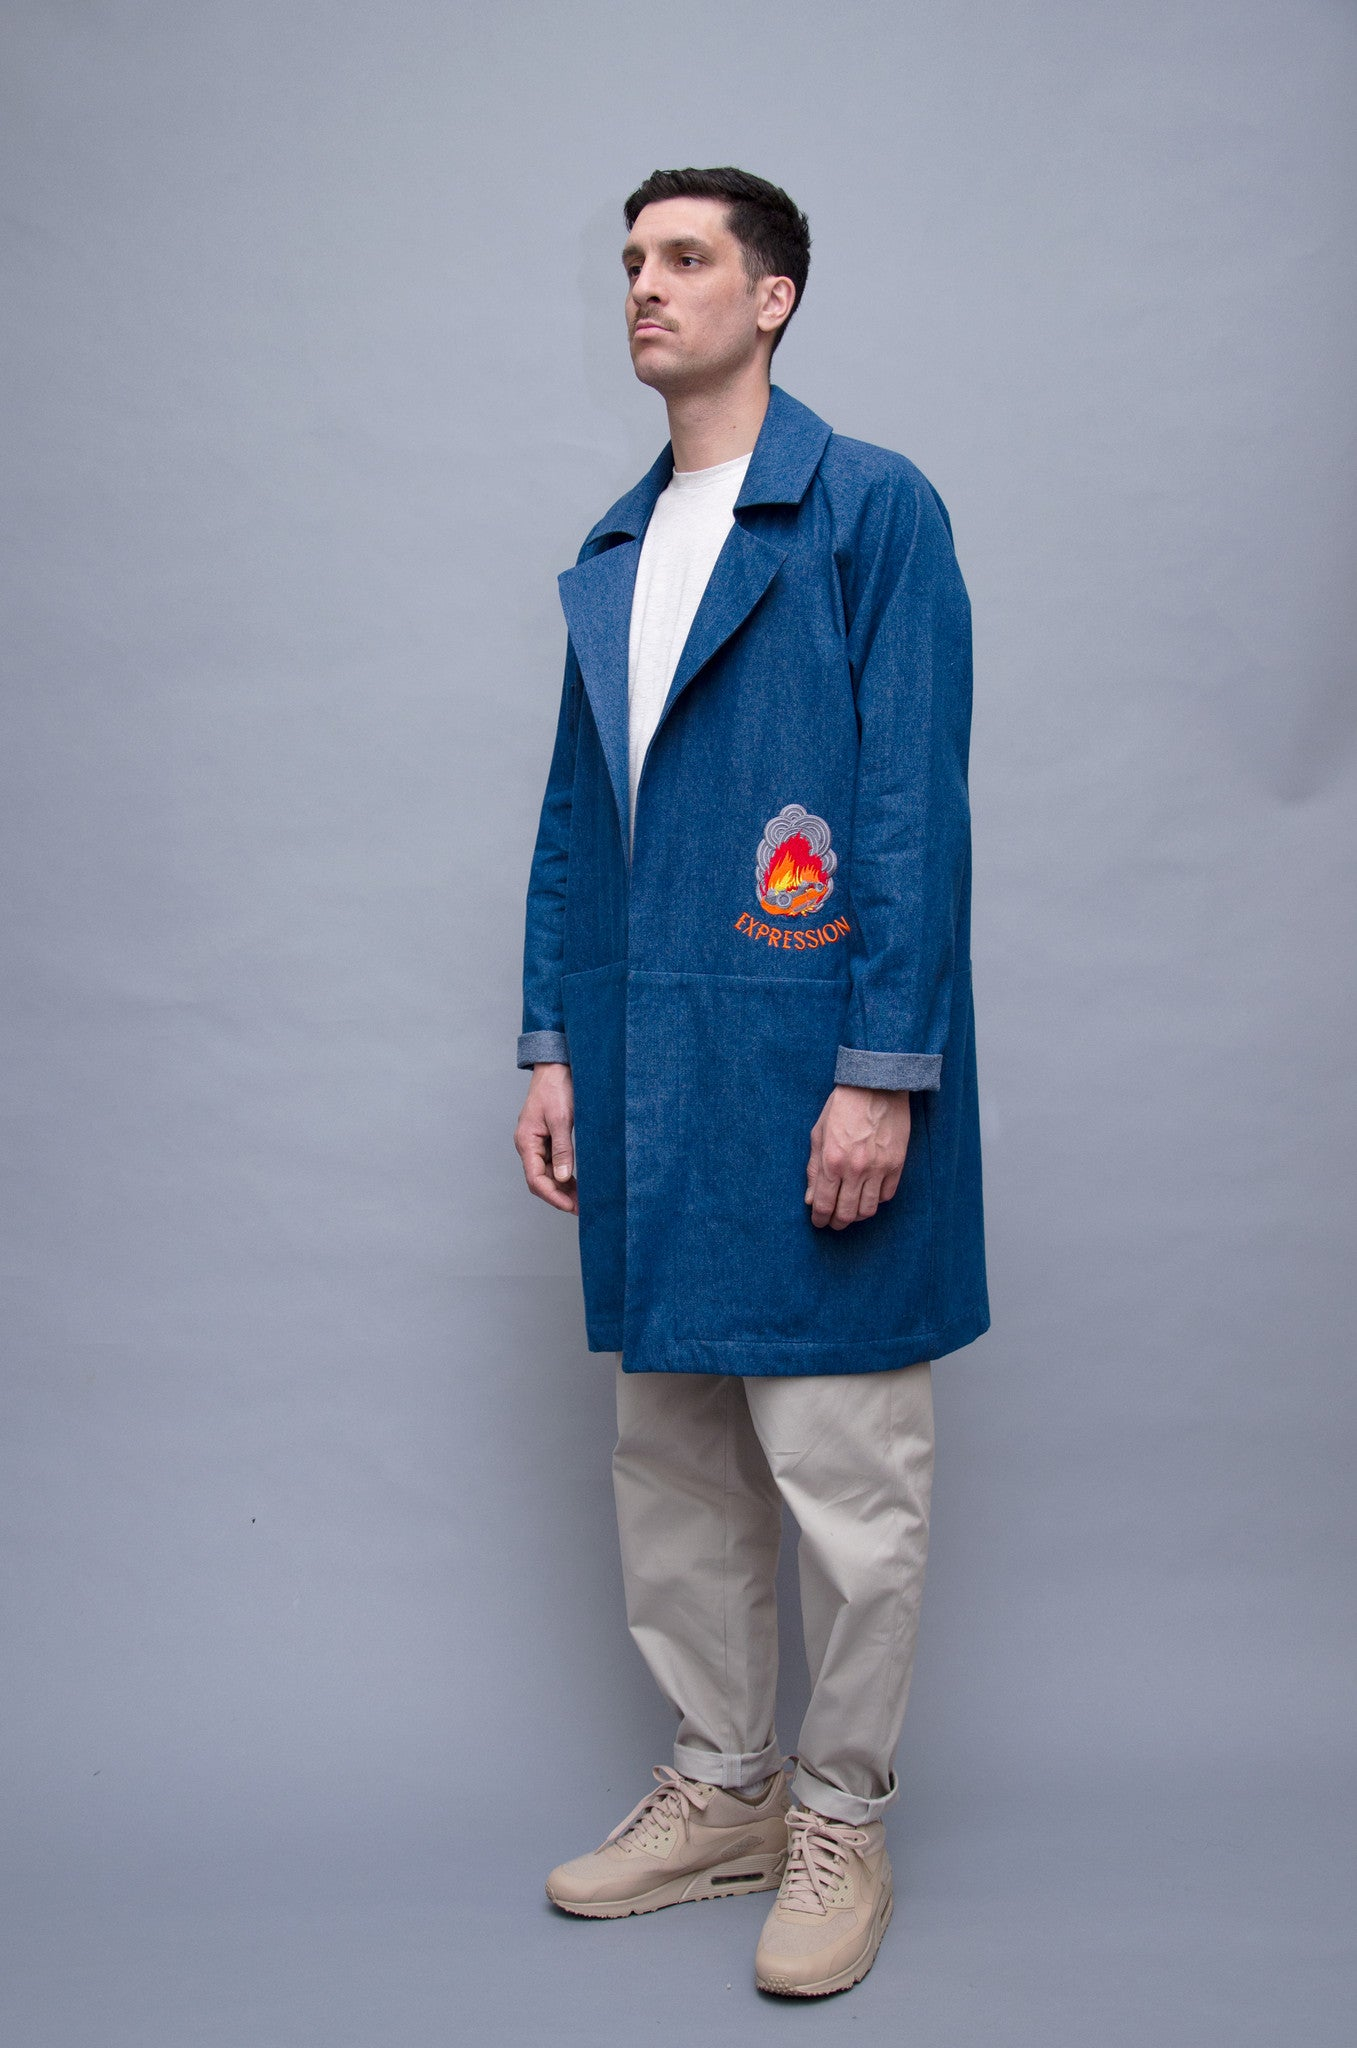 The North Hill Denim Burn-A-Car Jacket is a made in France jacket